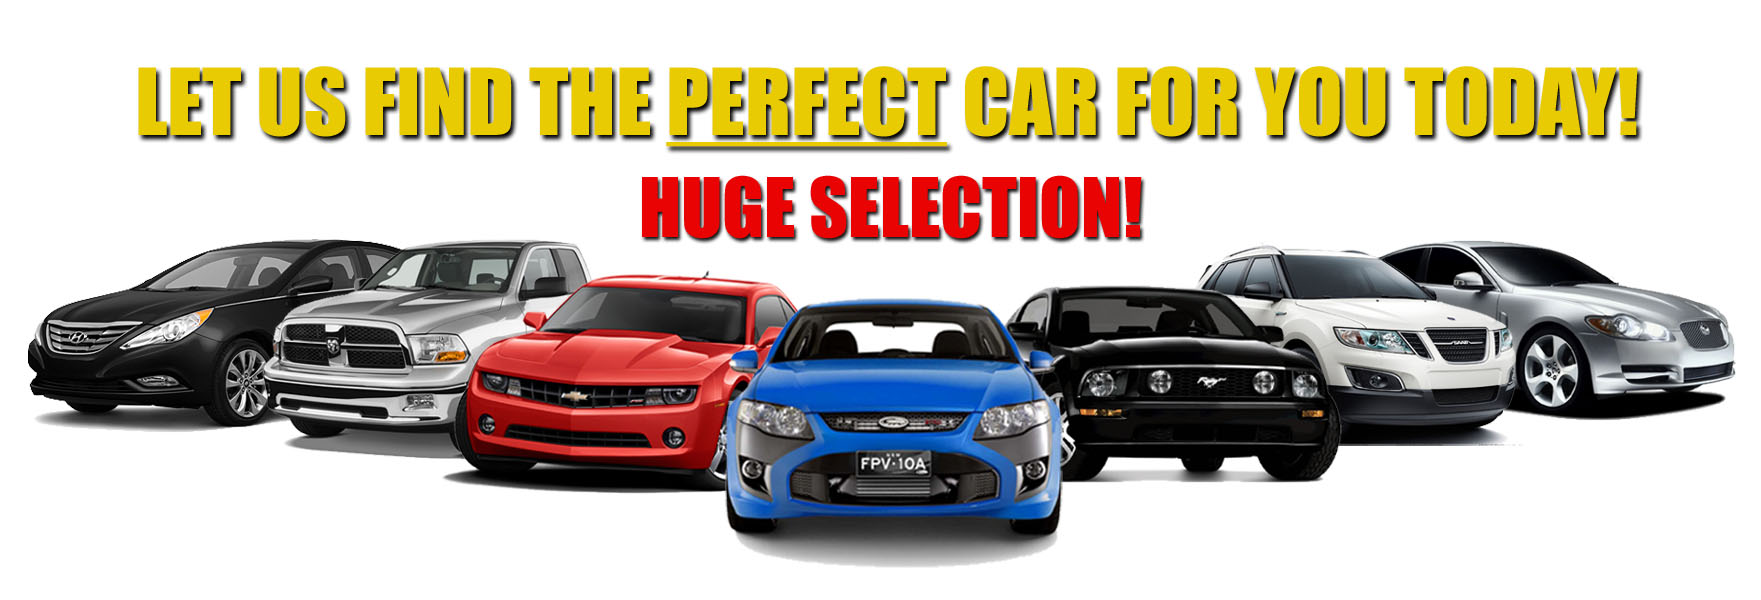 Websites That Sell Used Cars By Owner